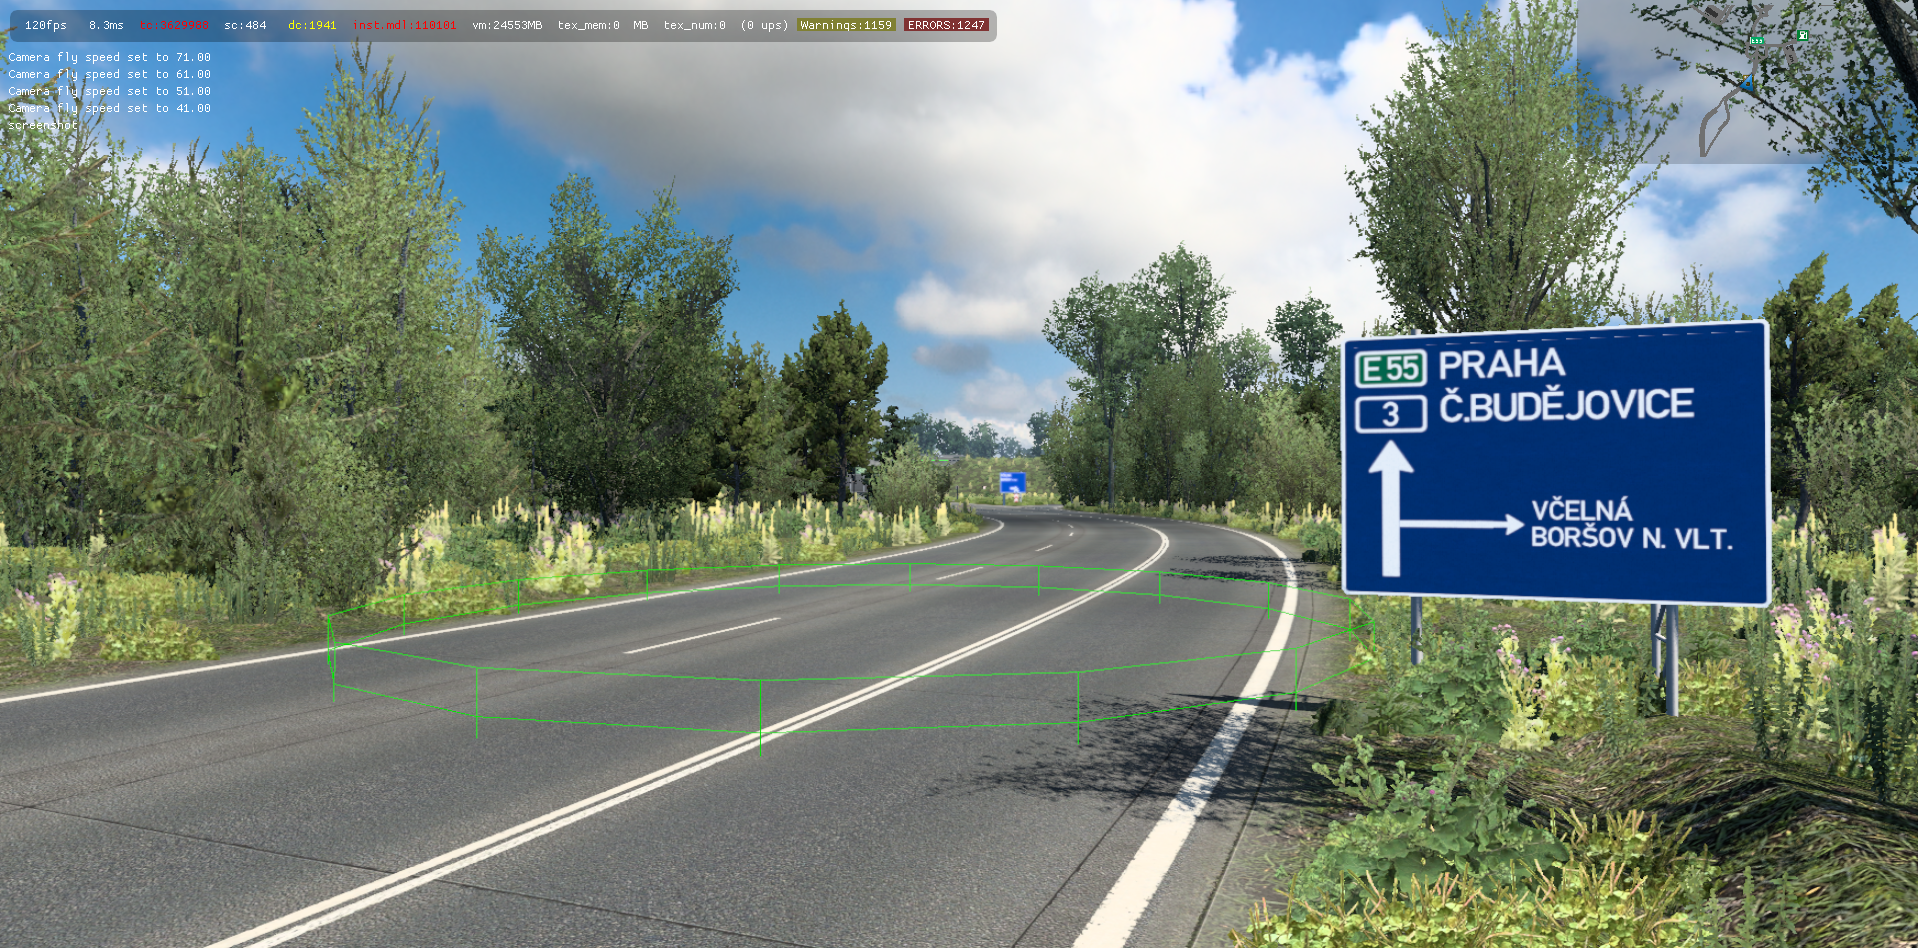 ets2_20210822_203405_00.png